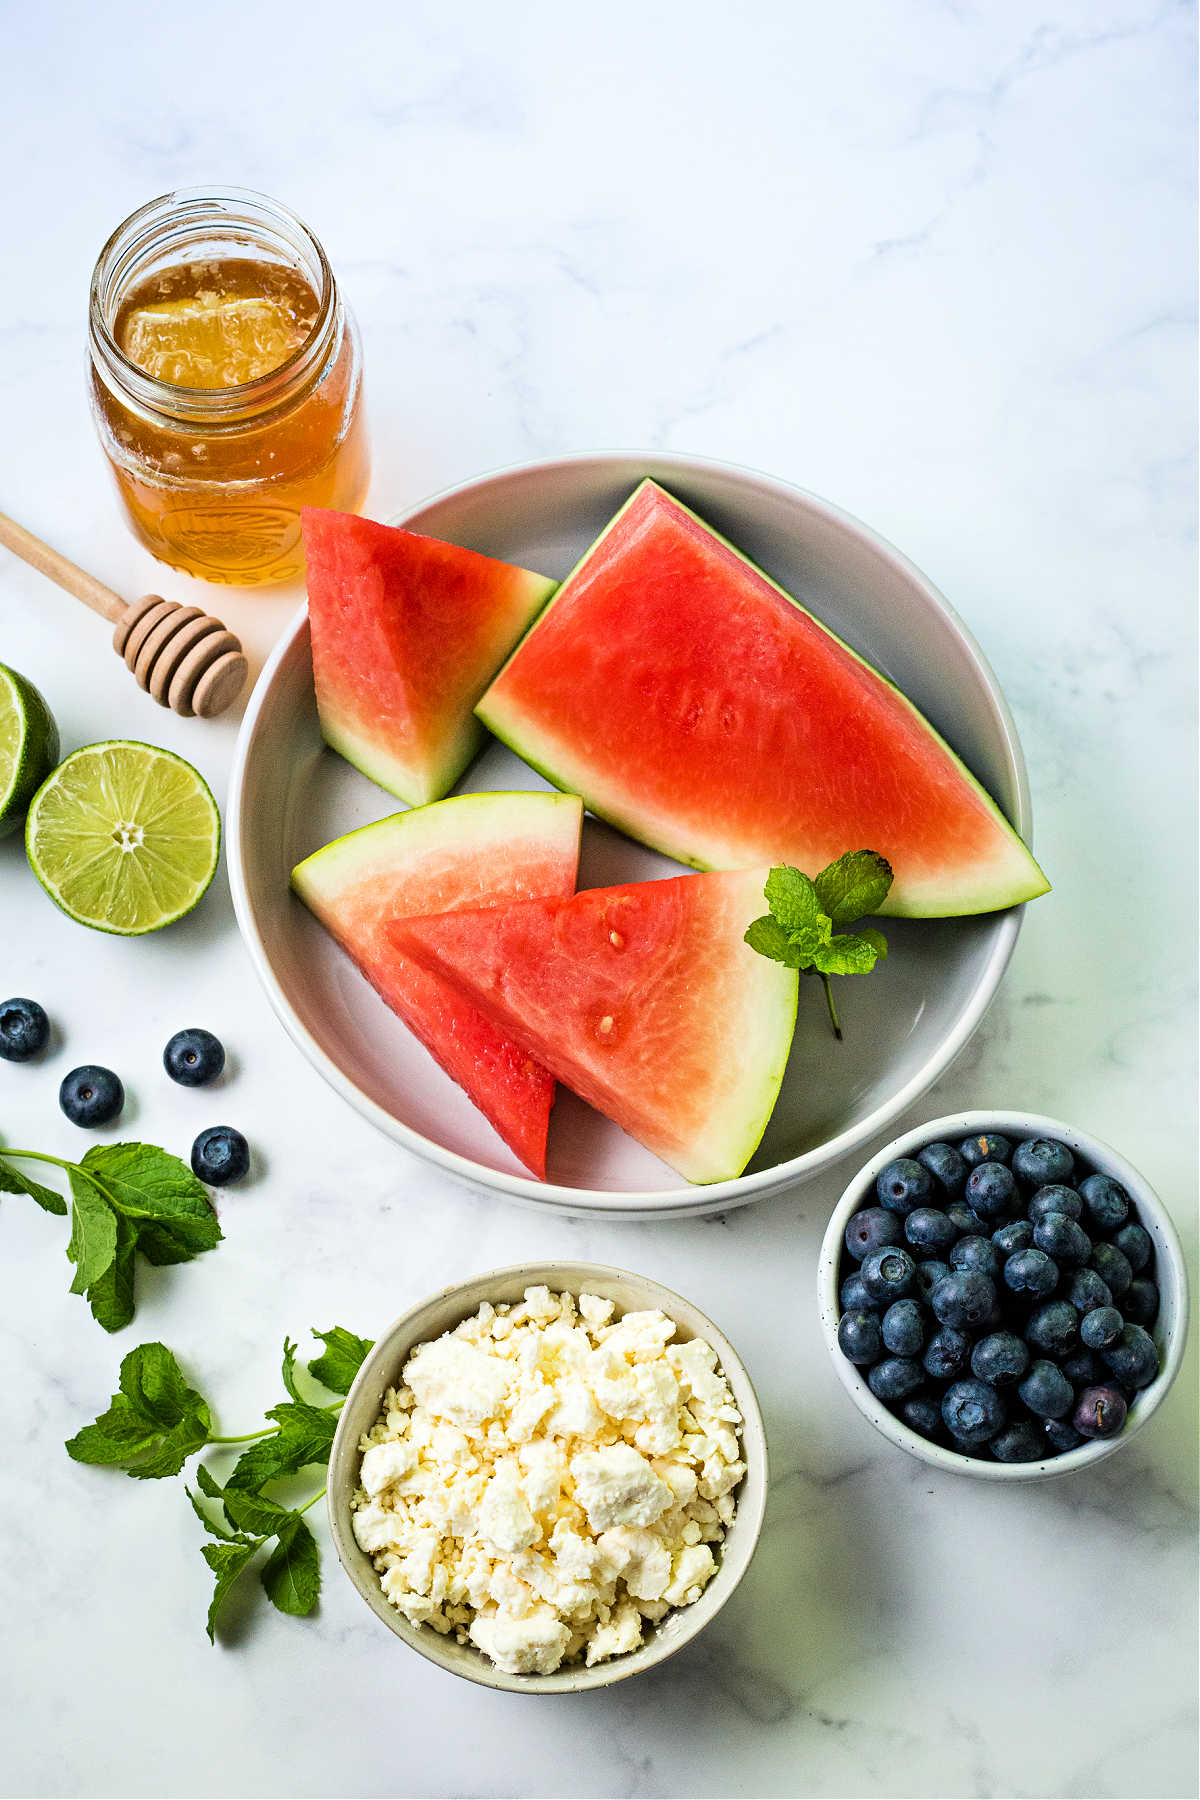 ingredients for watermelon and feta salad on a counter top: wedges of watermelon in a plate; feta cheese; blueberries; fresh mint sprigs; a jar of honey and a lime.